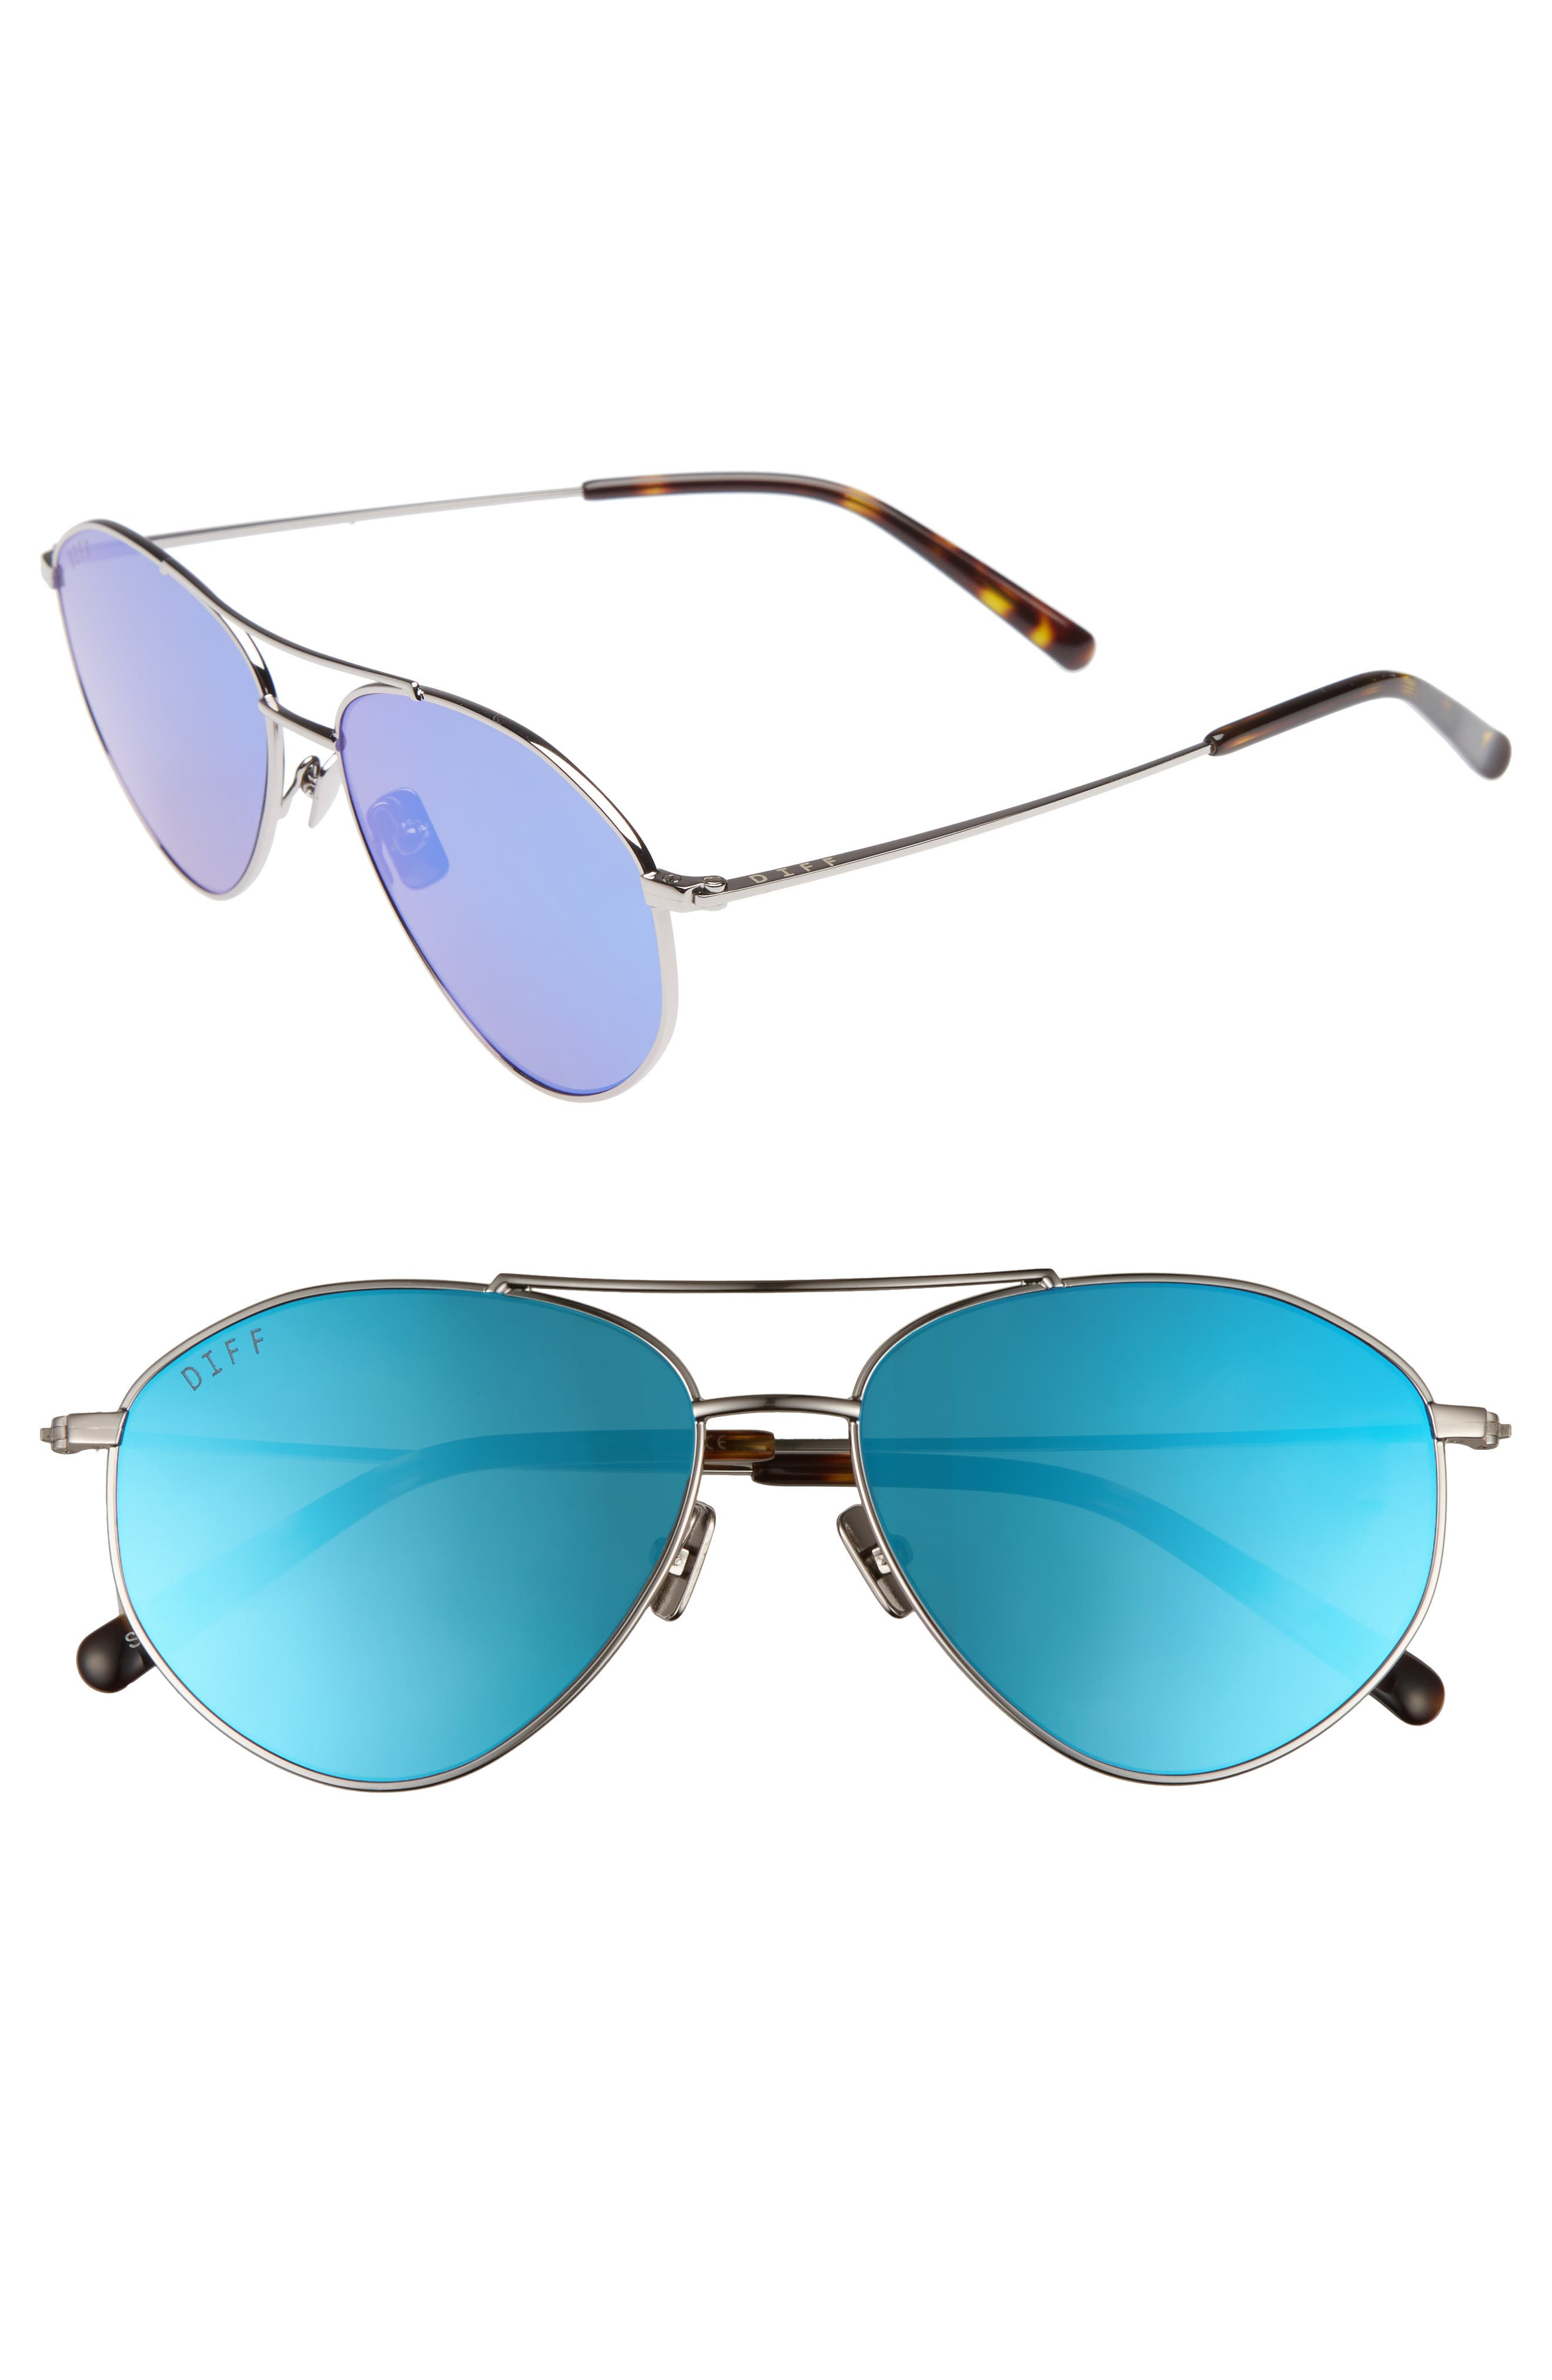 Scout 53mm Aviator Sunglasses,                         Main,                         color, LIGHT GUNMETAL/ ICE BLUE